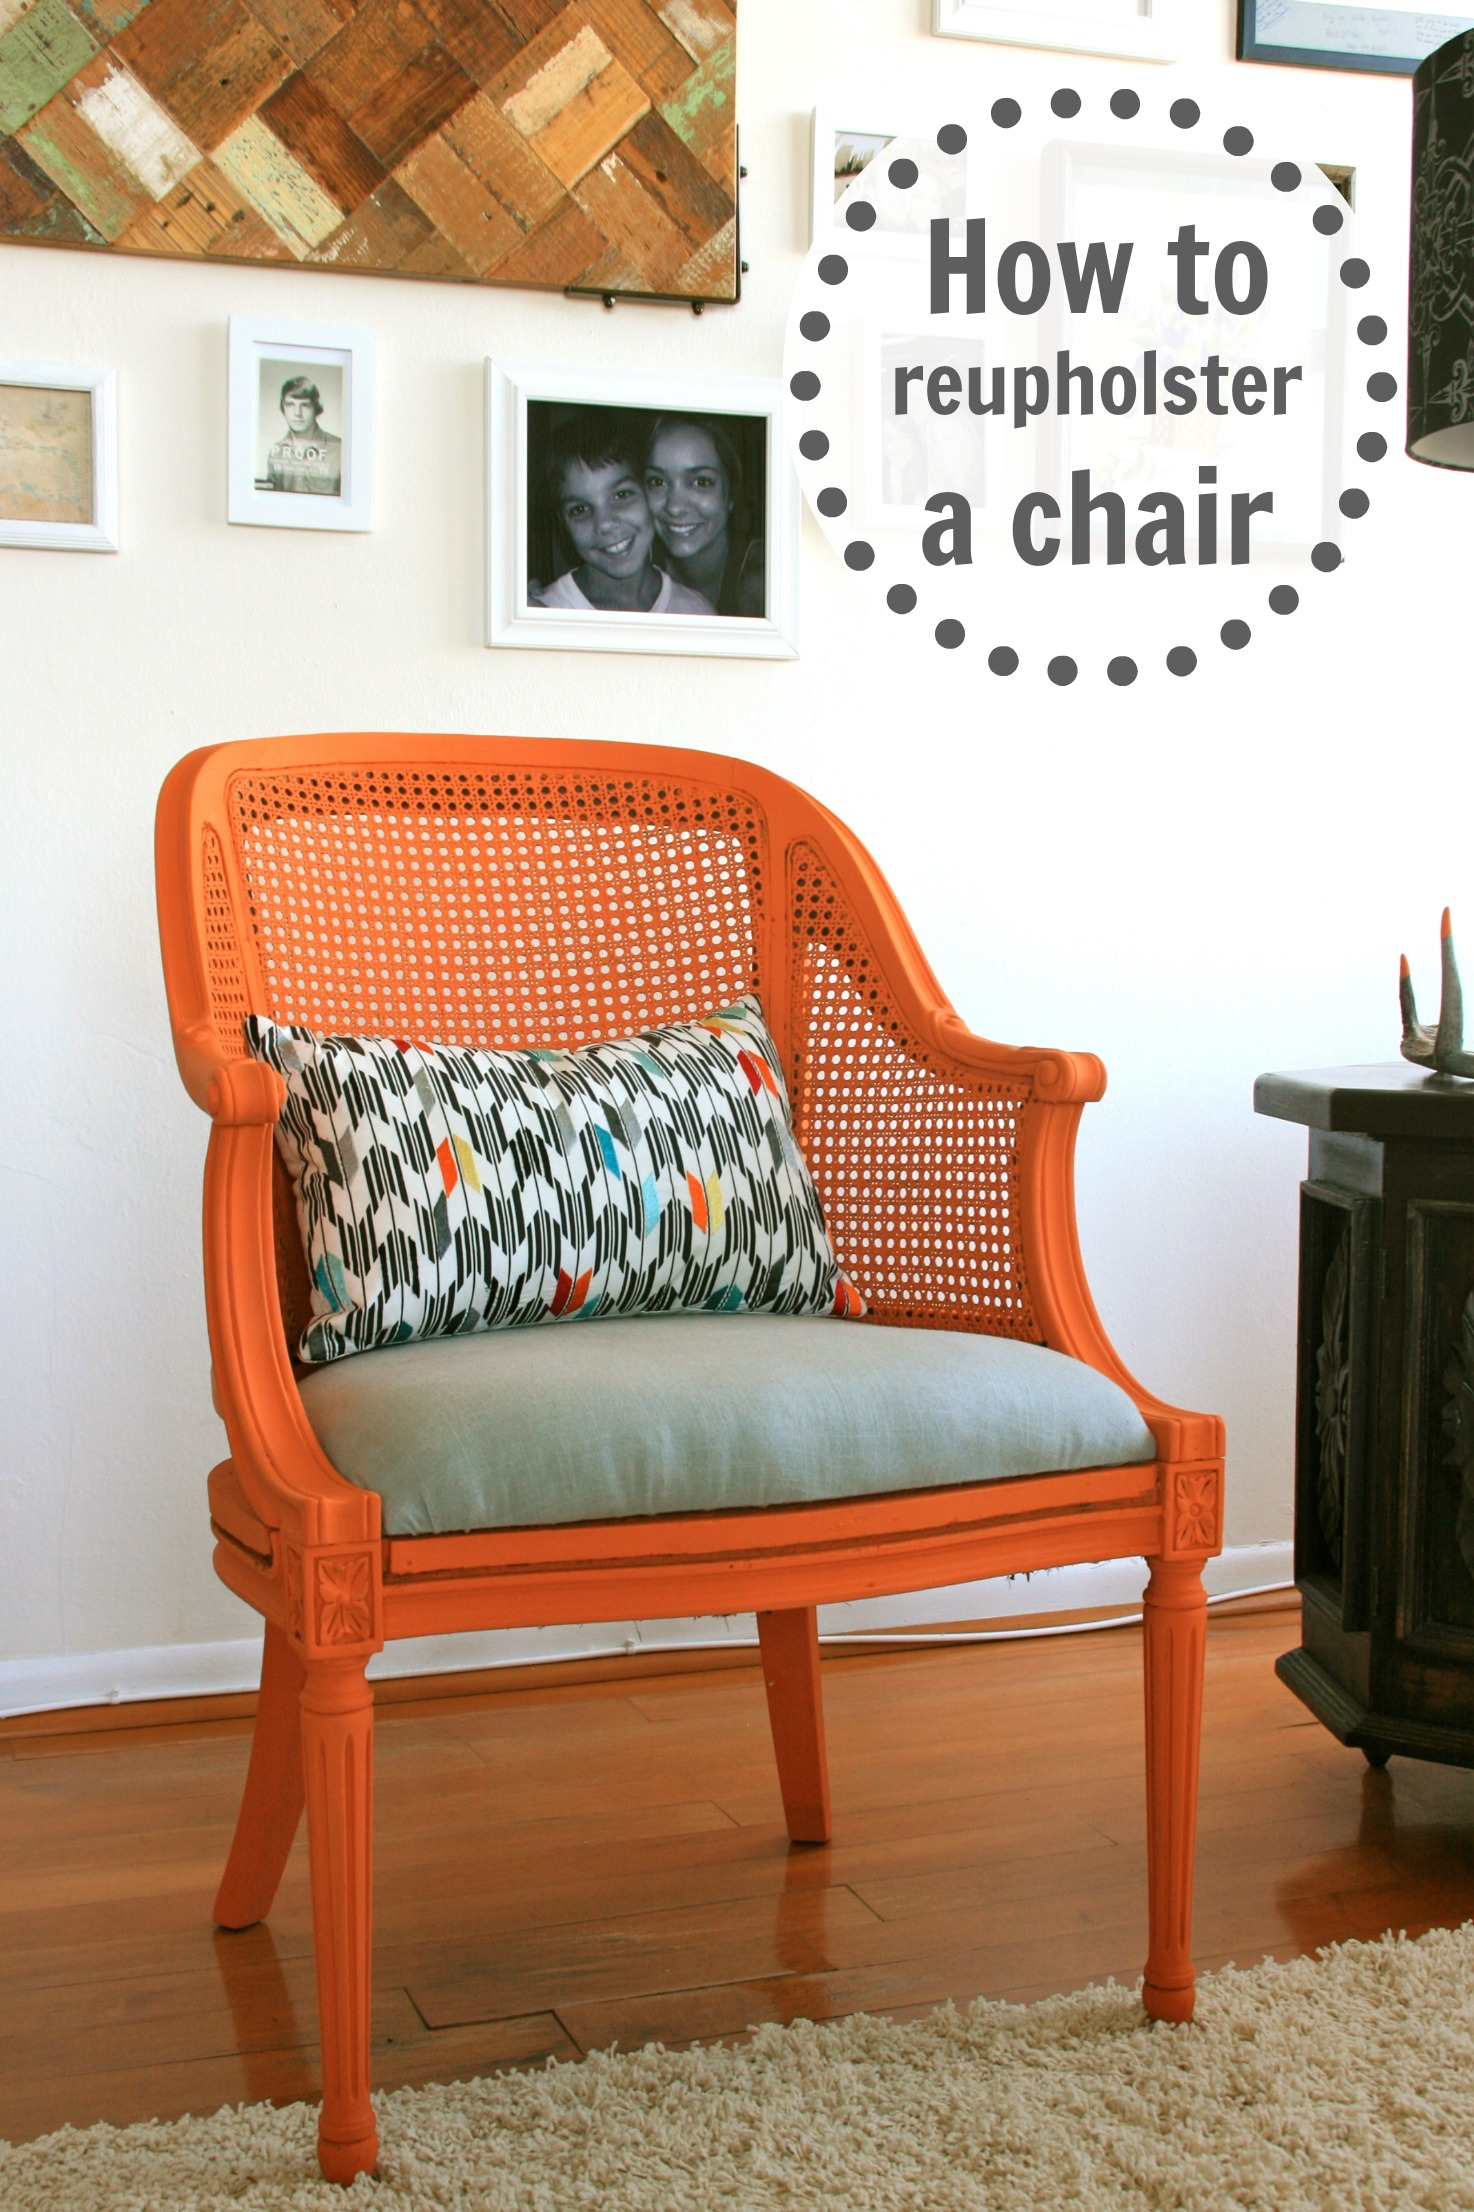 How-To: Reupholster a Chair